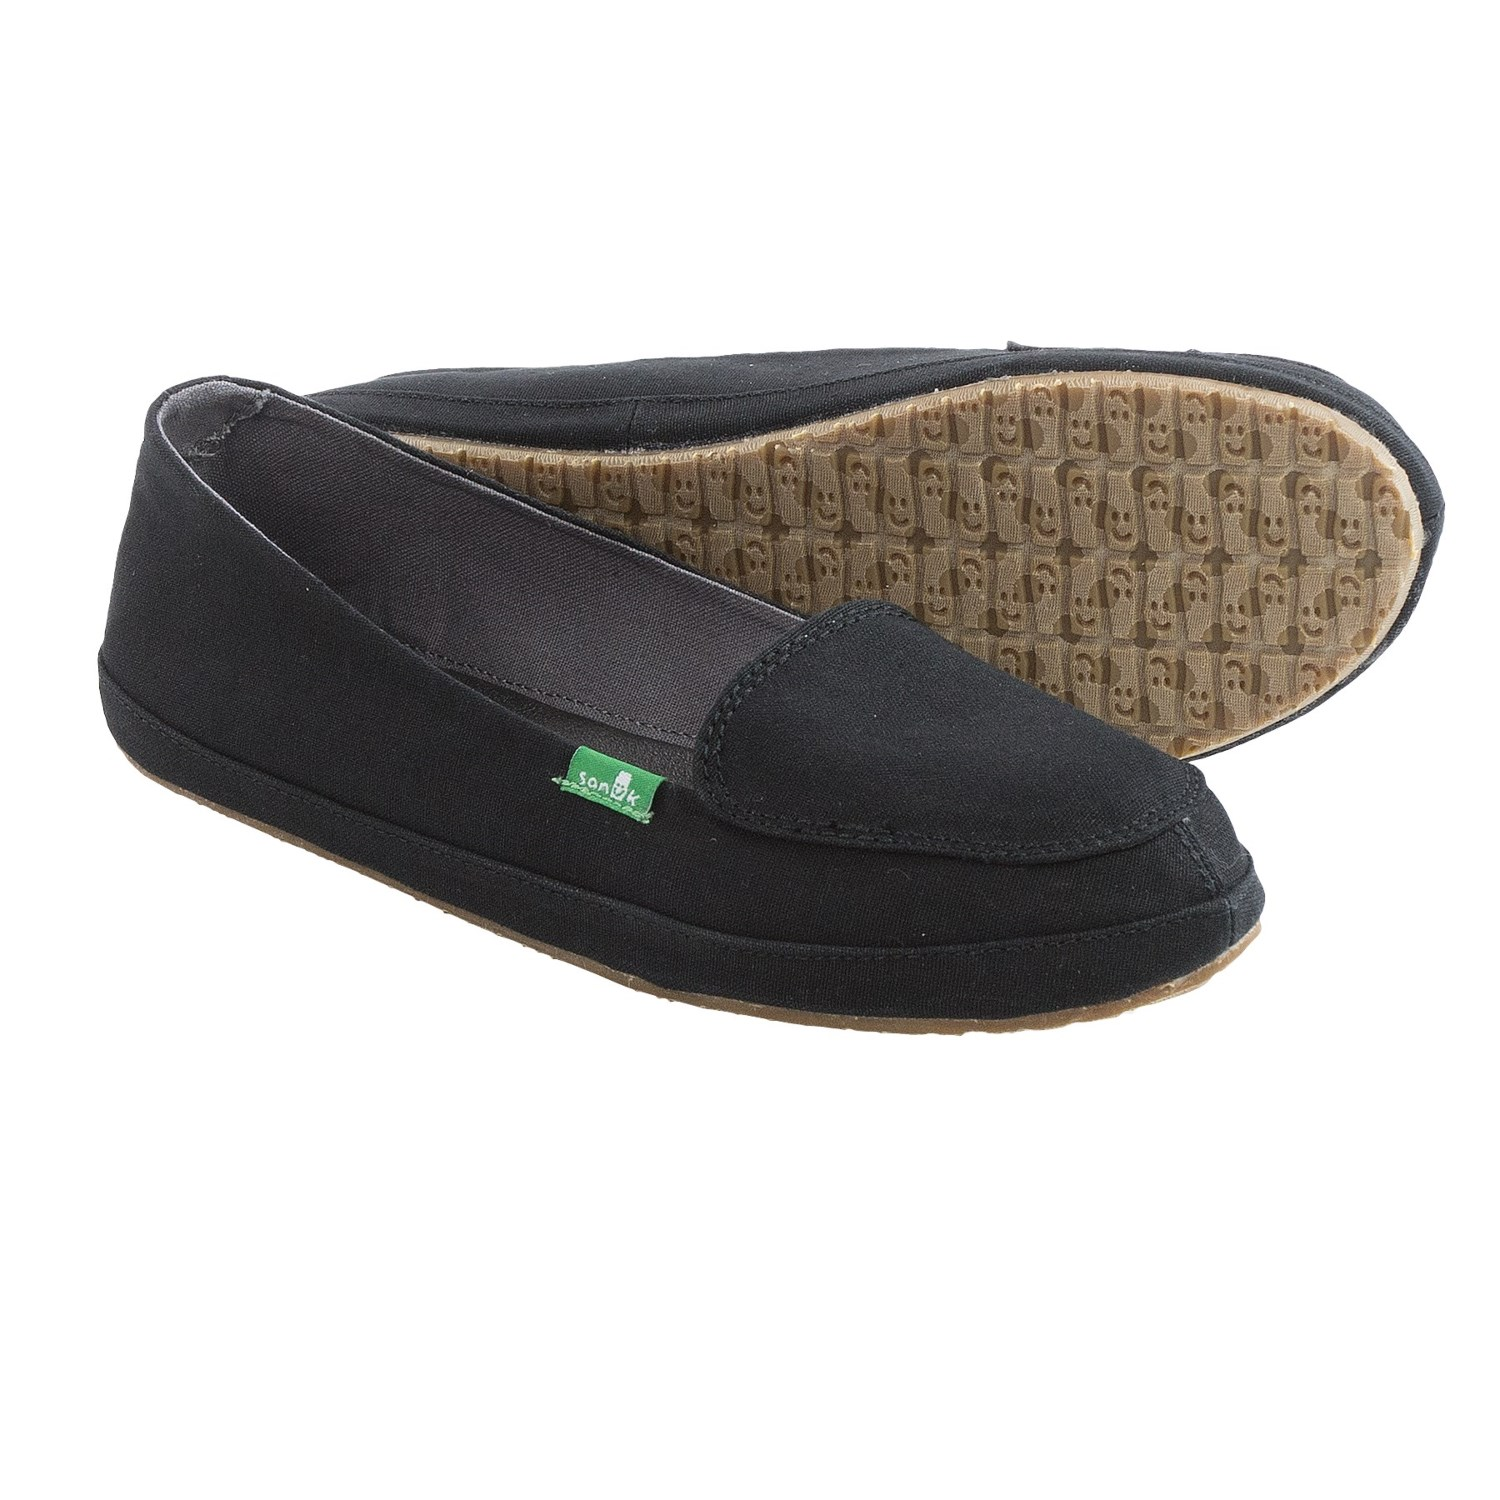 sanuk blanche canvas shoes for 114nj save 45